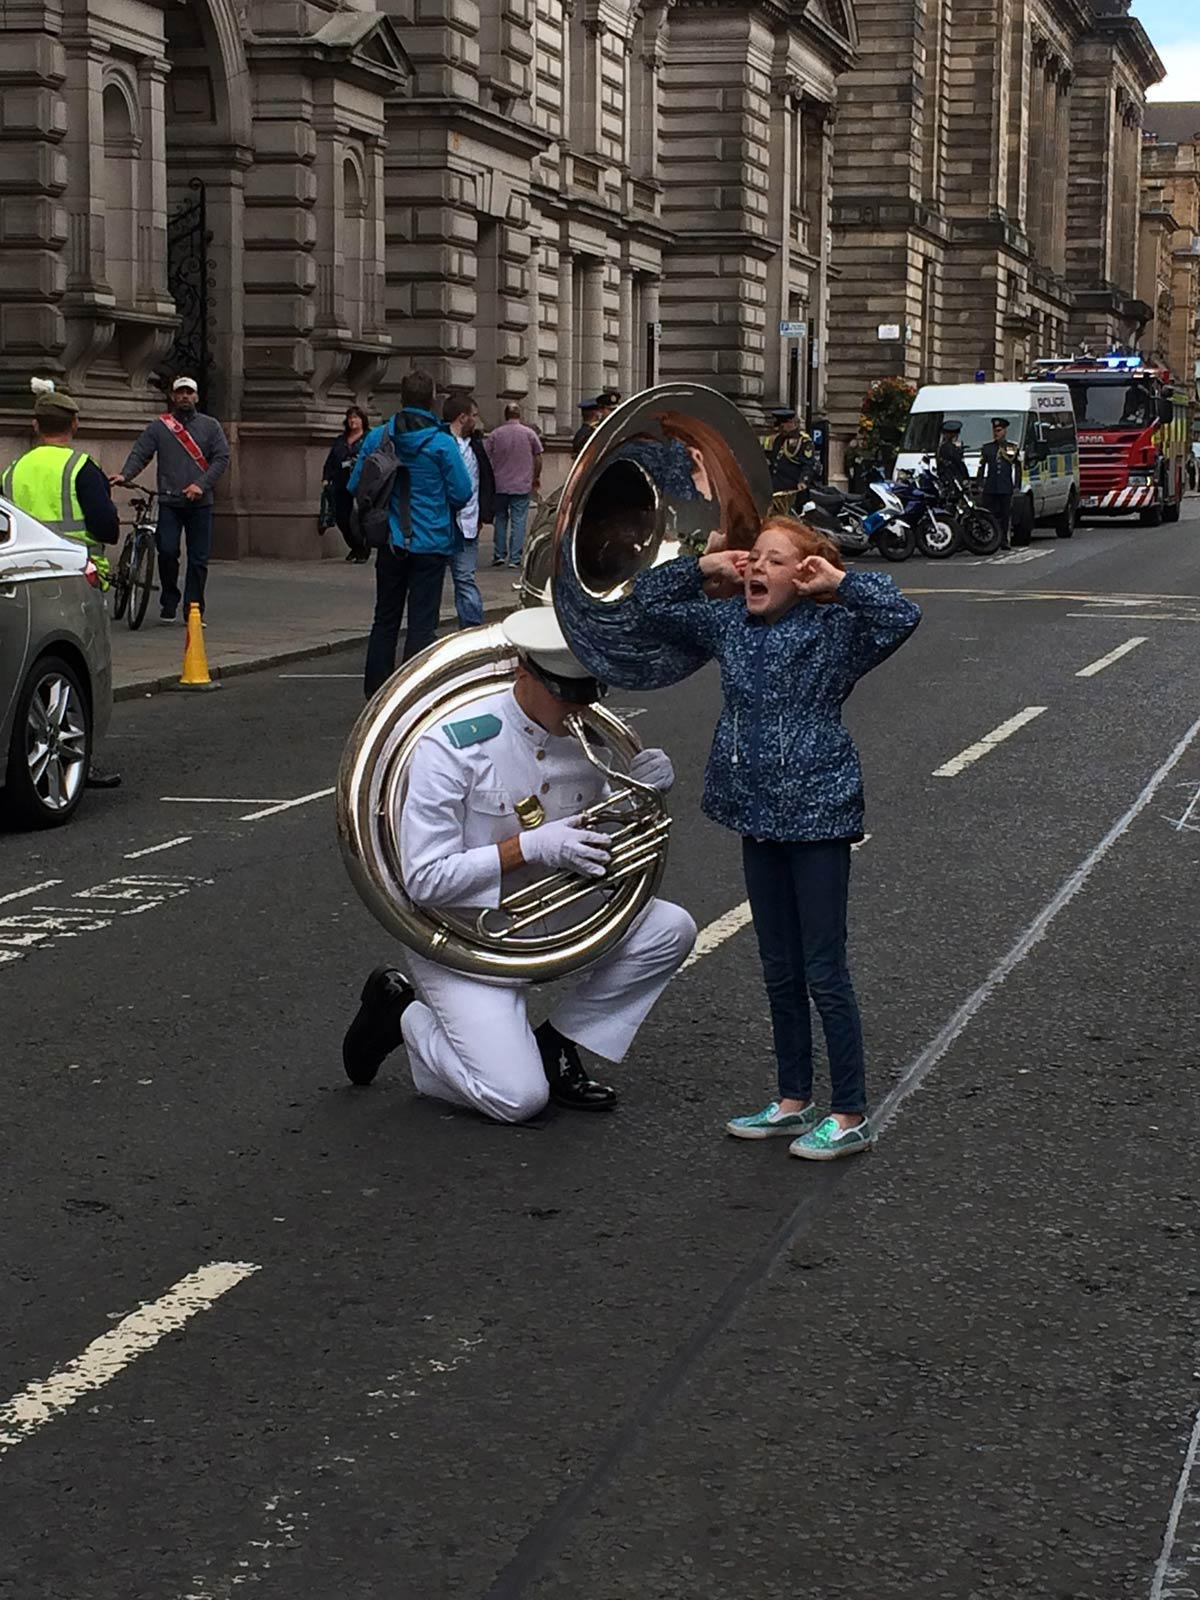 tuba-and-young-girl